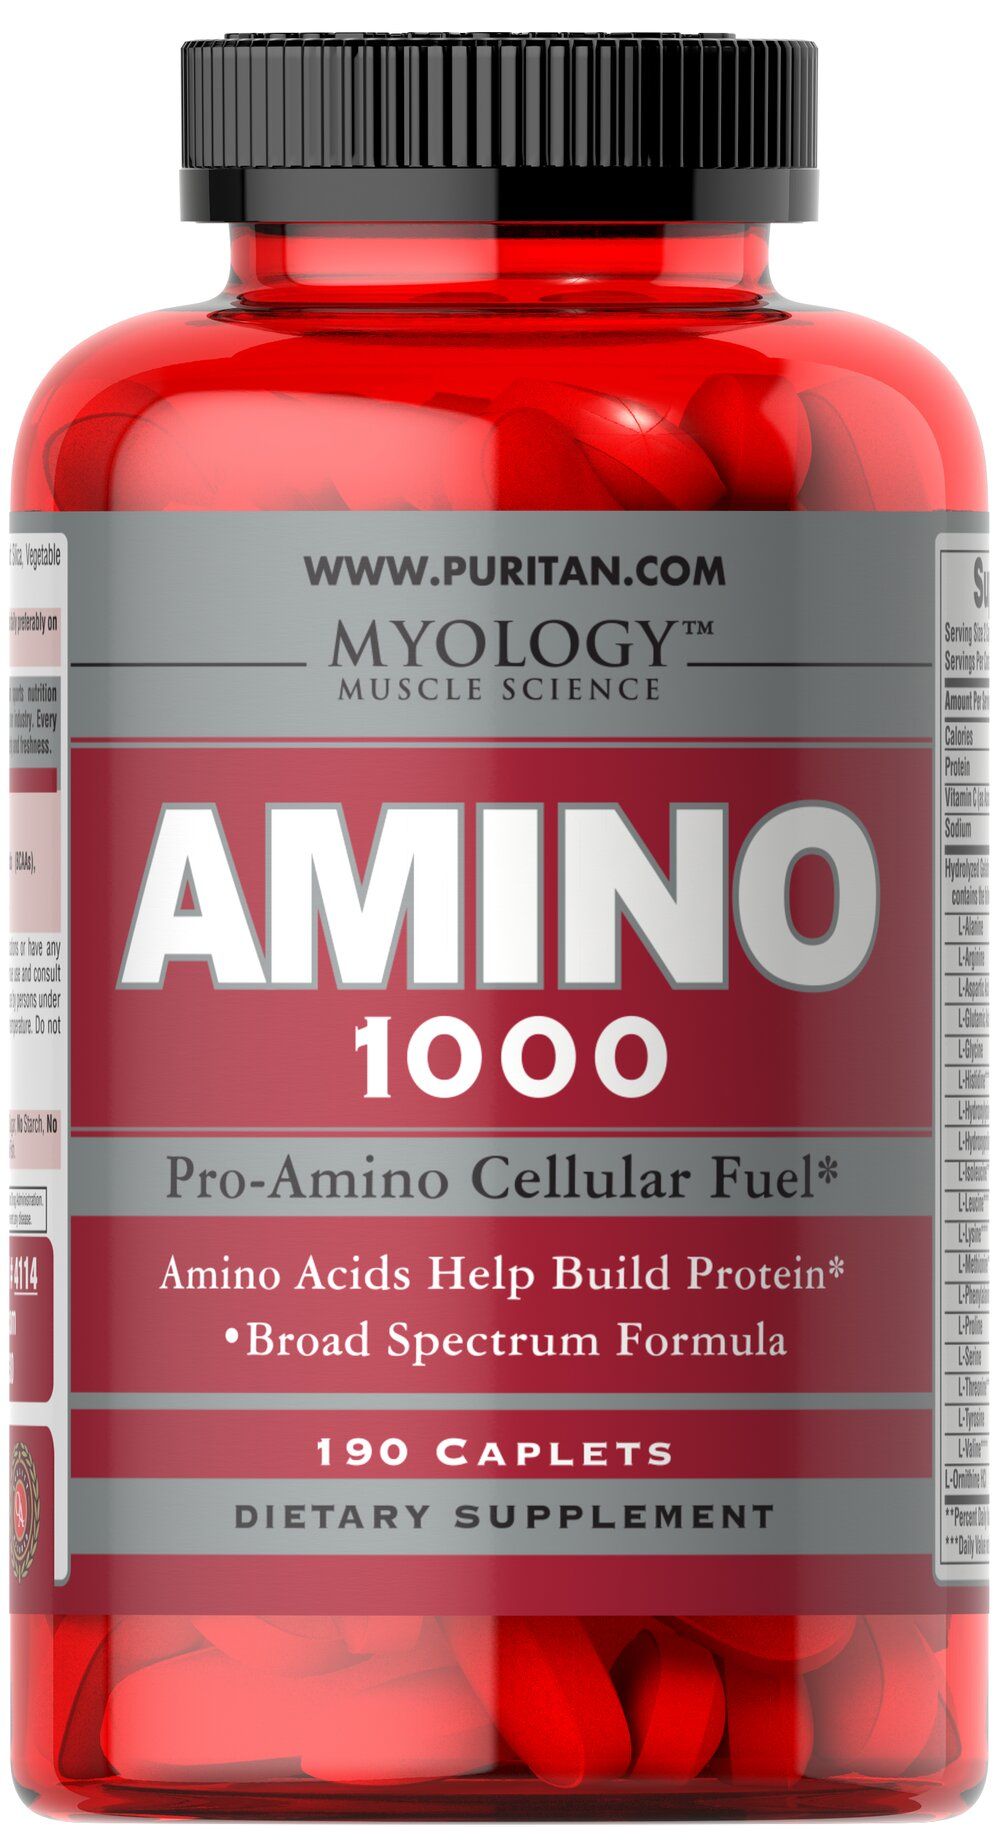 Amino 1000 Thumbnail Alternate Bottle View